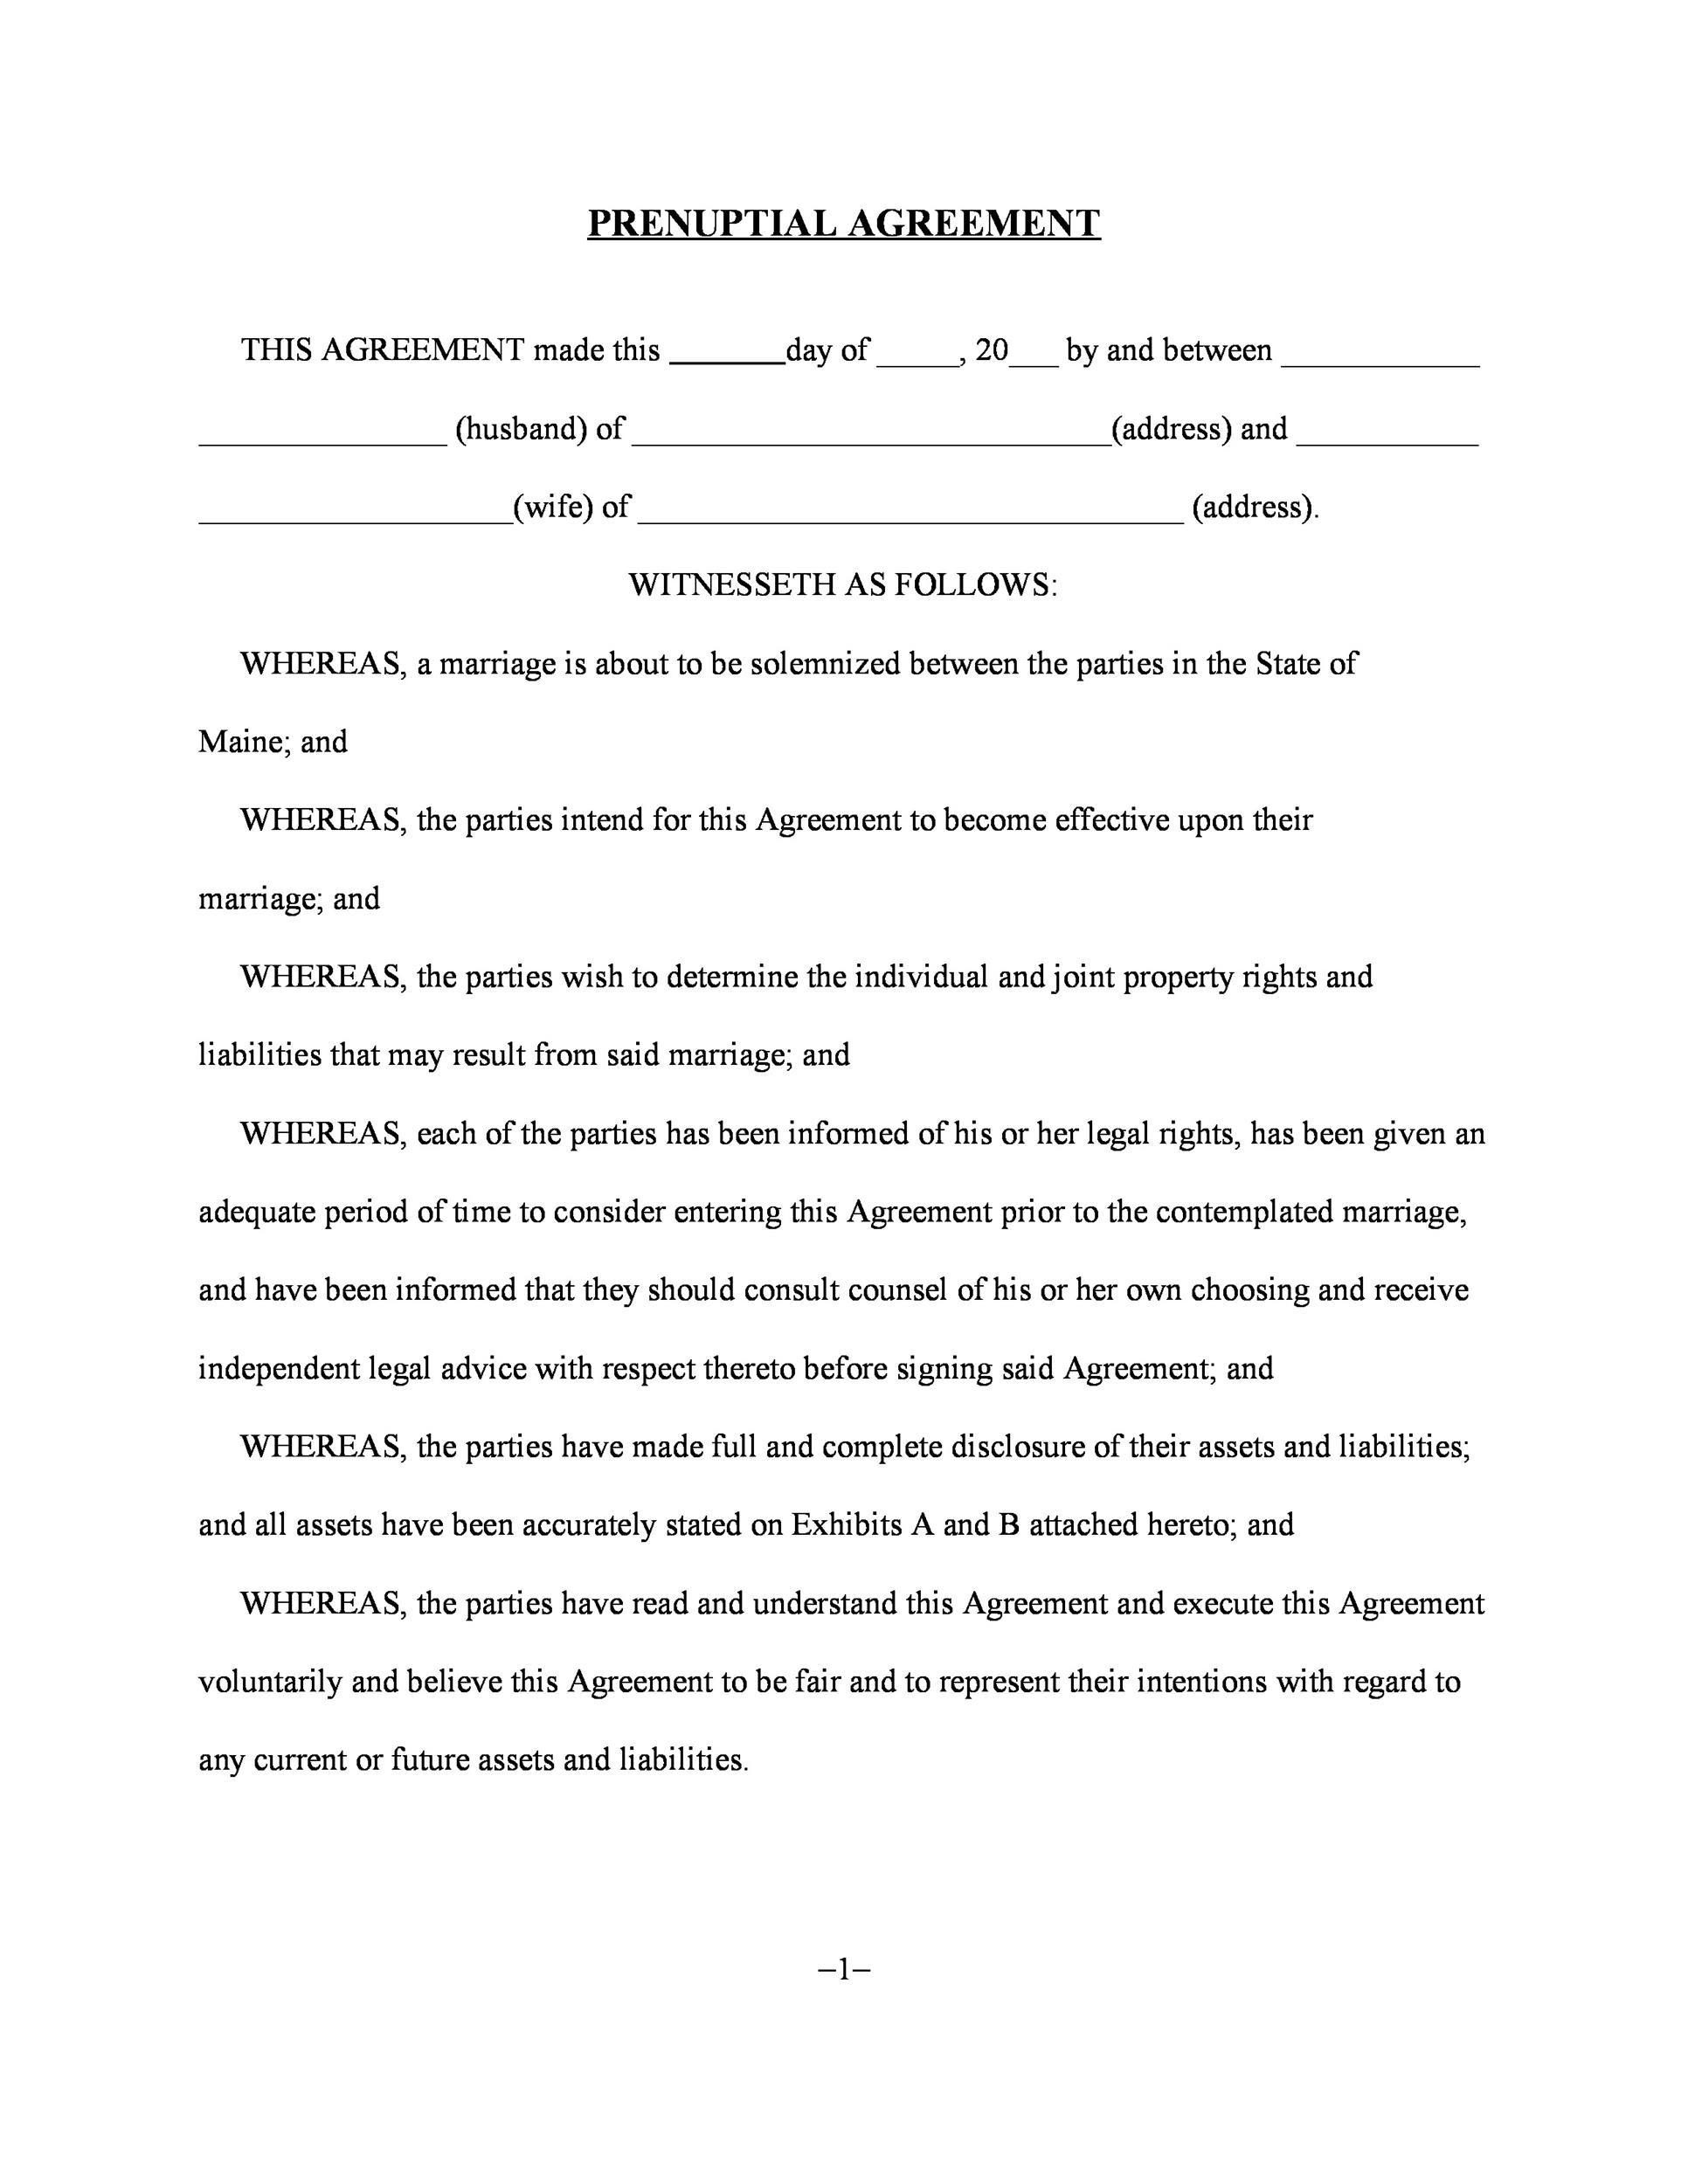 Prenuptial agreement template.